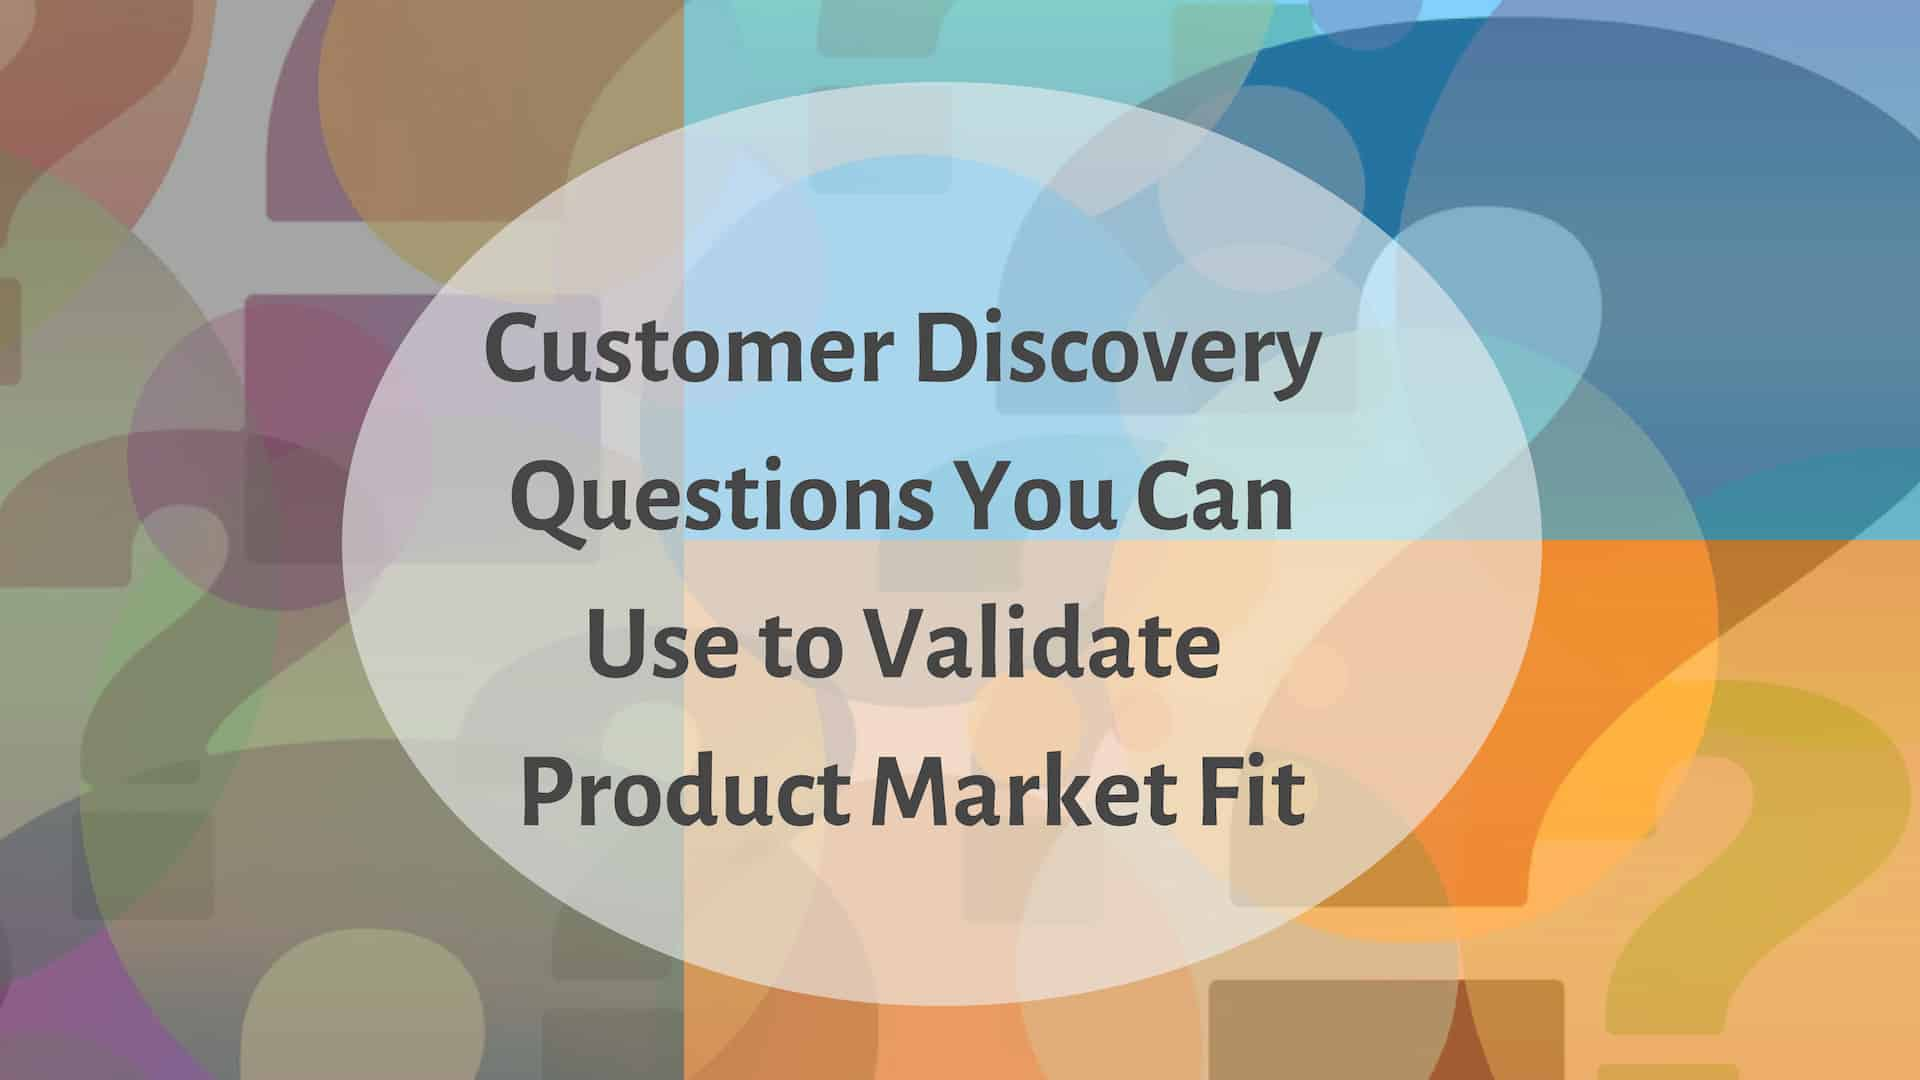 Customer Discovery Questions You Can Use To Validate Product Market Fit For Your Startup